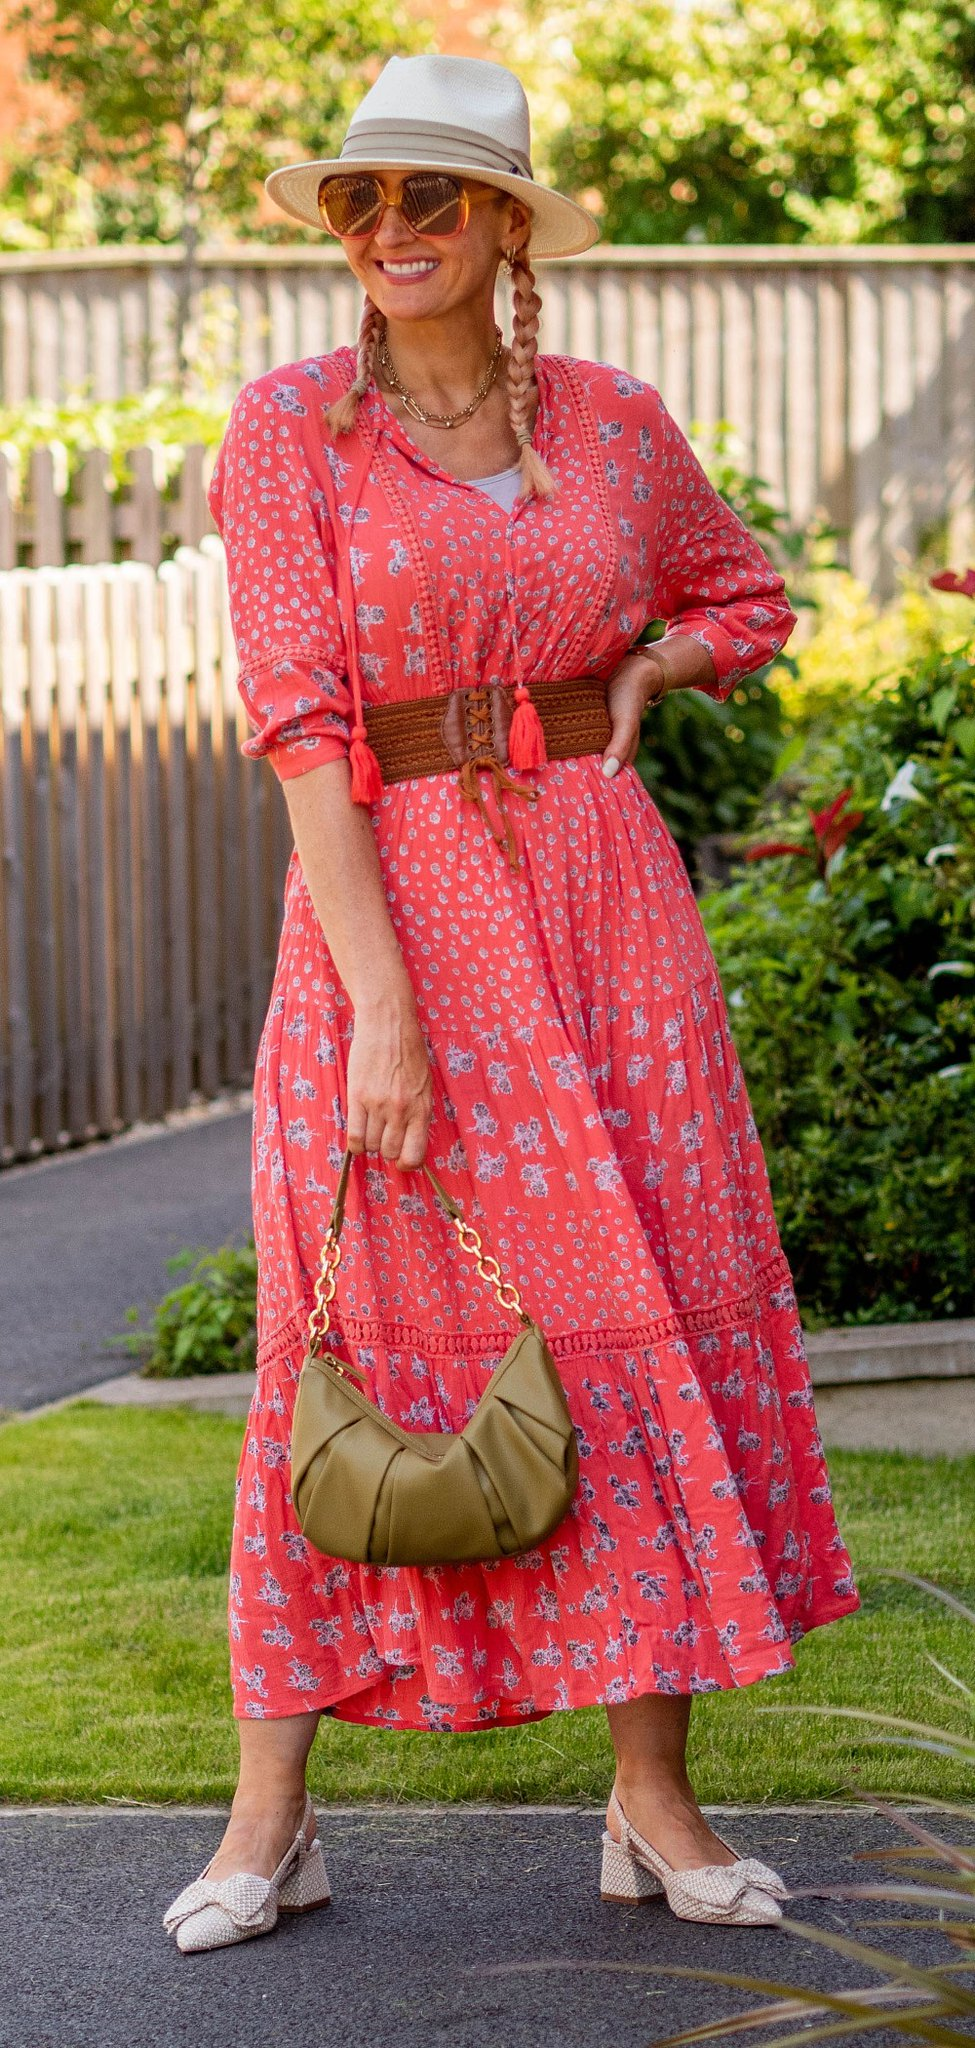 Catherine Summers AKA Not Dressed As Lamb wearing boho coral maxi summer dress, slingback bow-front mules, brown plaited belt, cream Panama hat and pink and orange 1970s-style oversized sunglasses